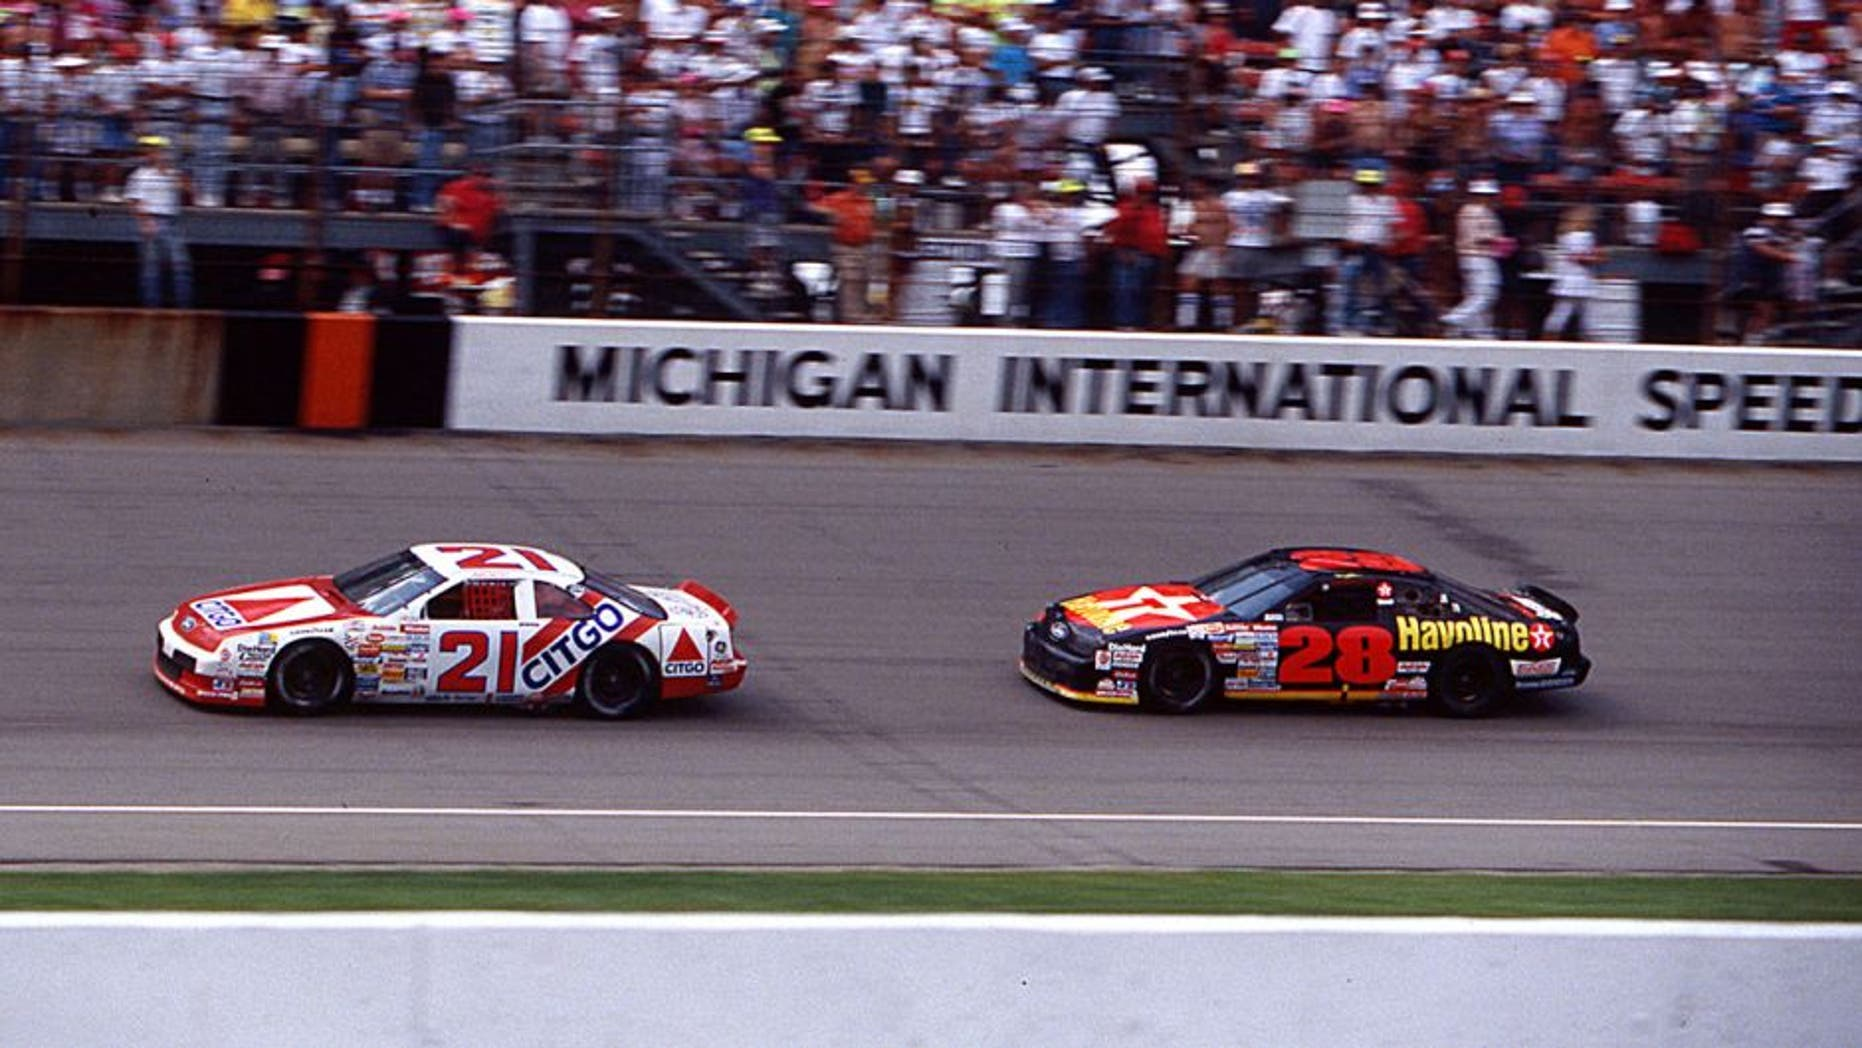 BROOKLYN, MI — August 18, 1991: Dale Jarrett (No. 21) in the Wood Brothers Citgo Ford leads Davey Allison (No. 28) to the checkered flag to win his first NASCAR Cup race, the Champion Spark Plug 400 at Michigan International Speedway. (Photo by ISC Images & Archives via Getty Images)